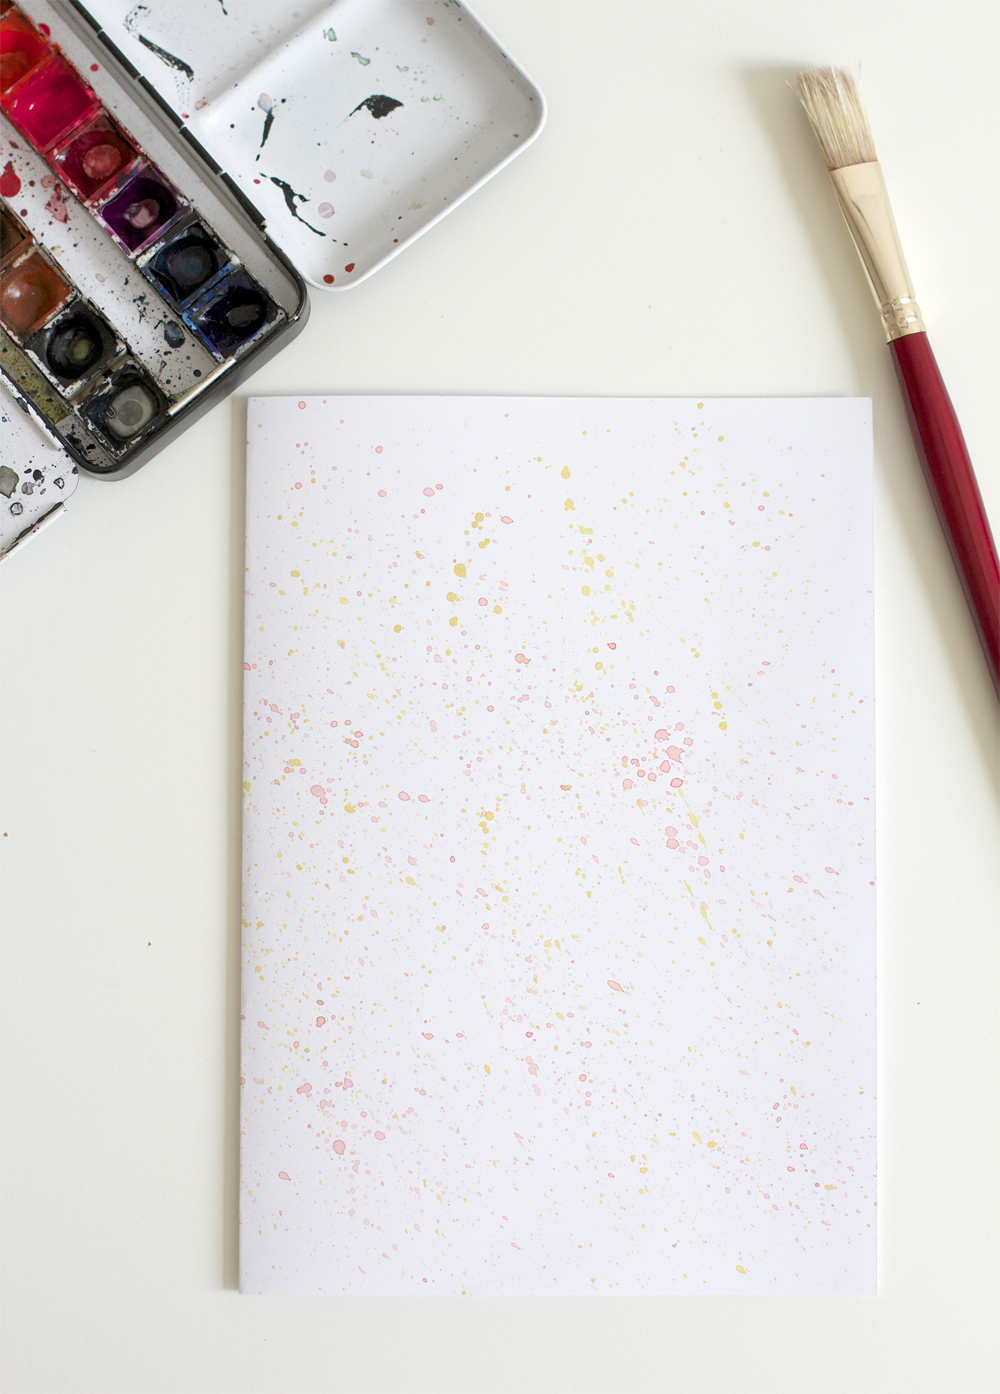 DIY:  Cover-Papier mit Spritzern | we love handmade